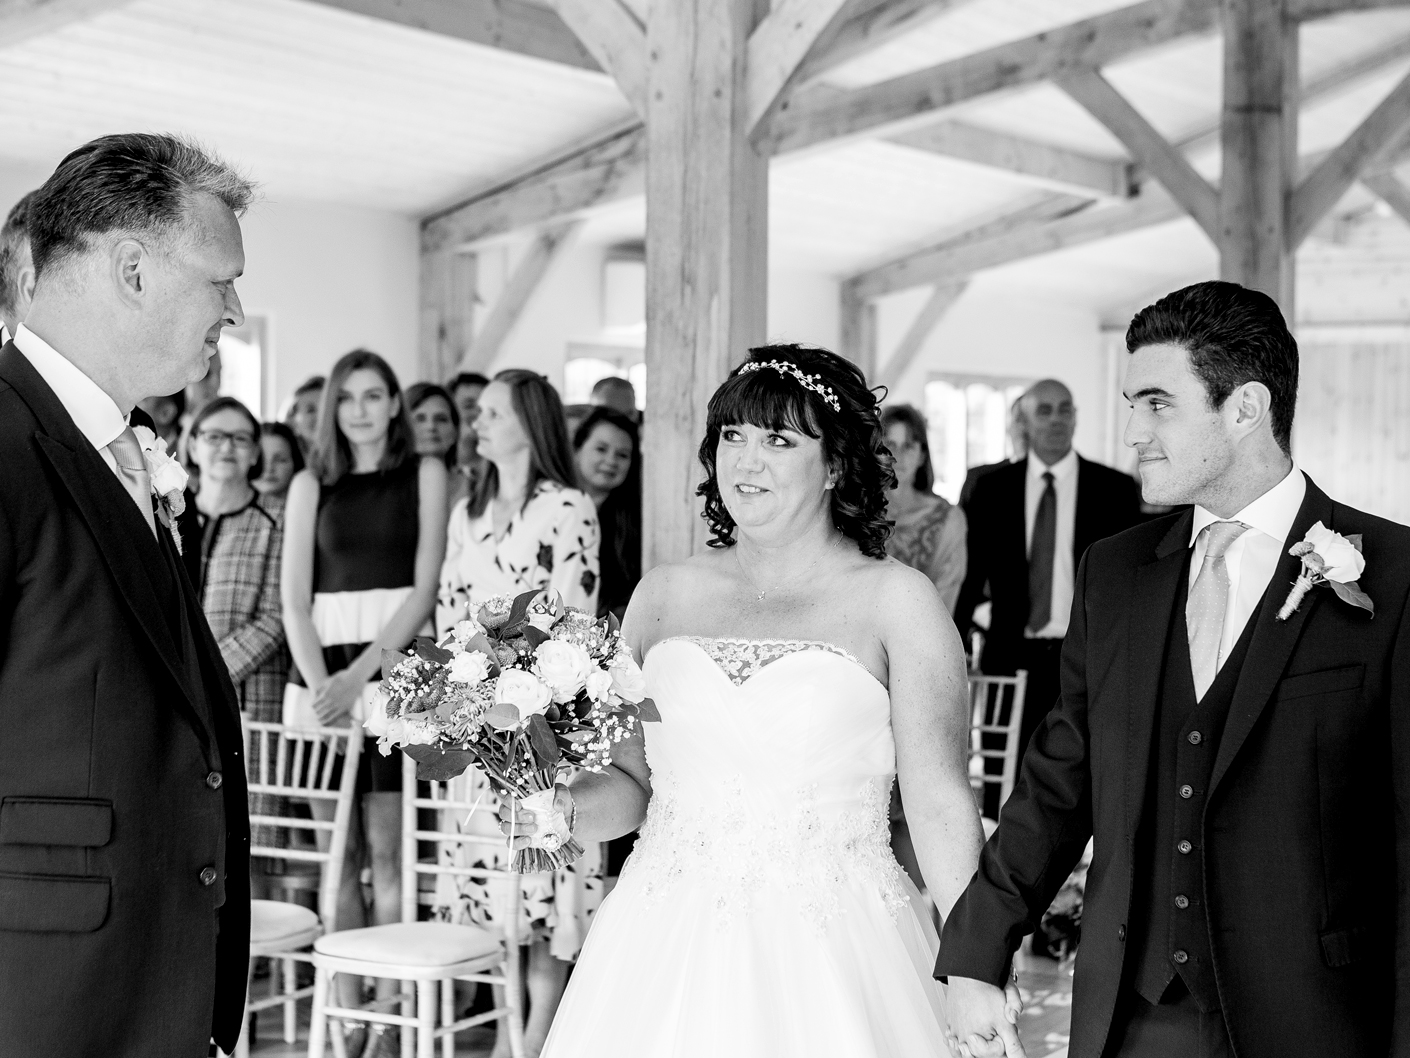 informal-photography-of-the-wedding-ceremony-at-Merrydale-Manor-Knutsford-Cheshire